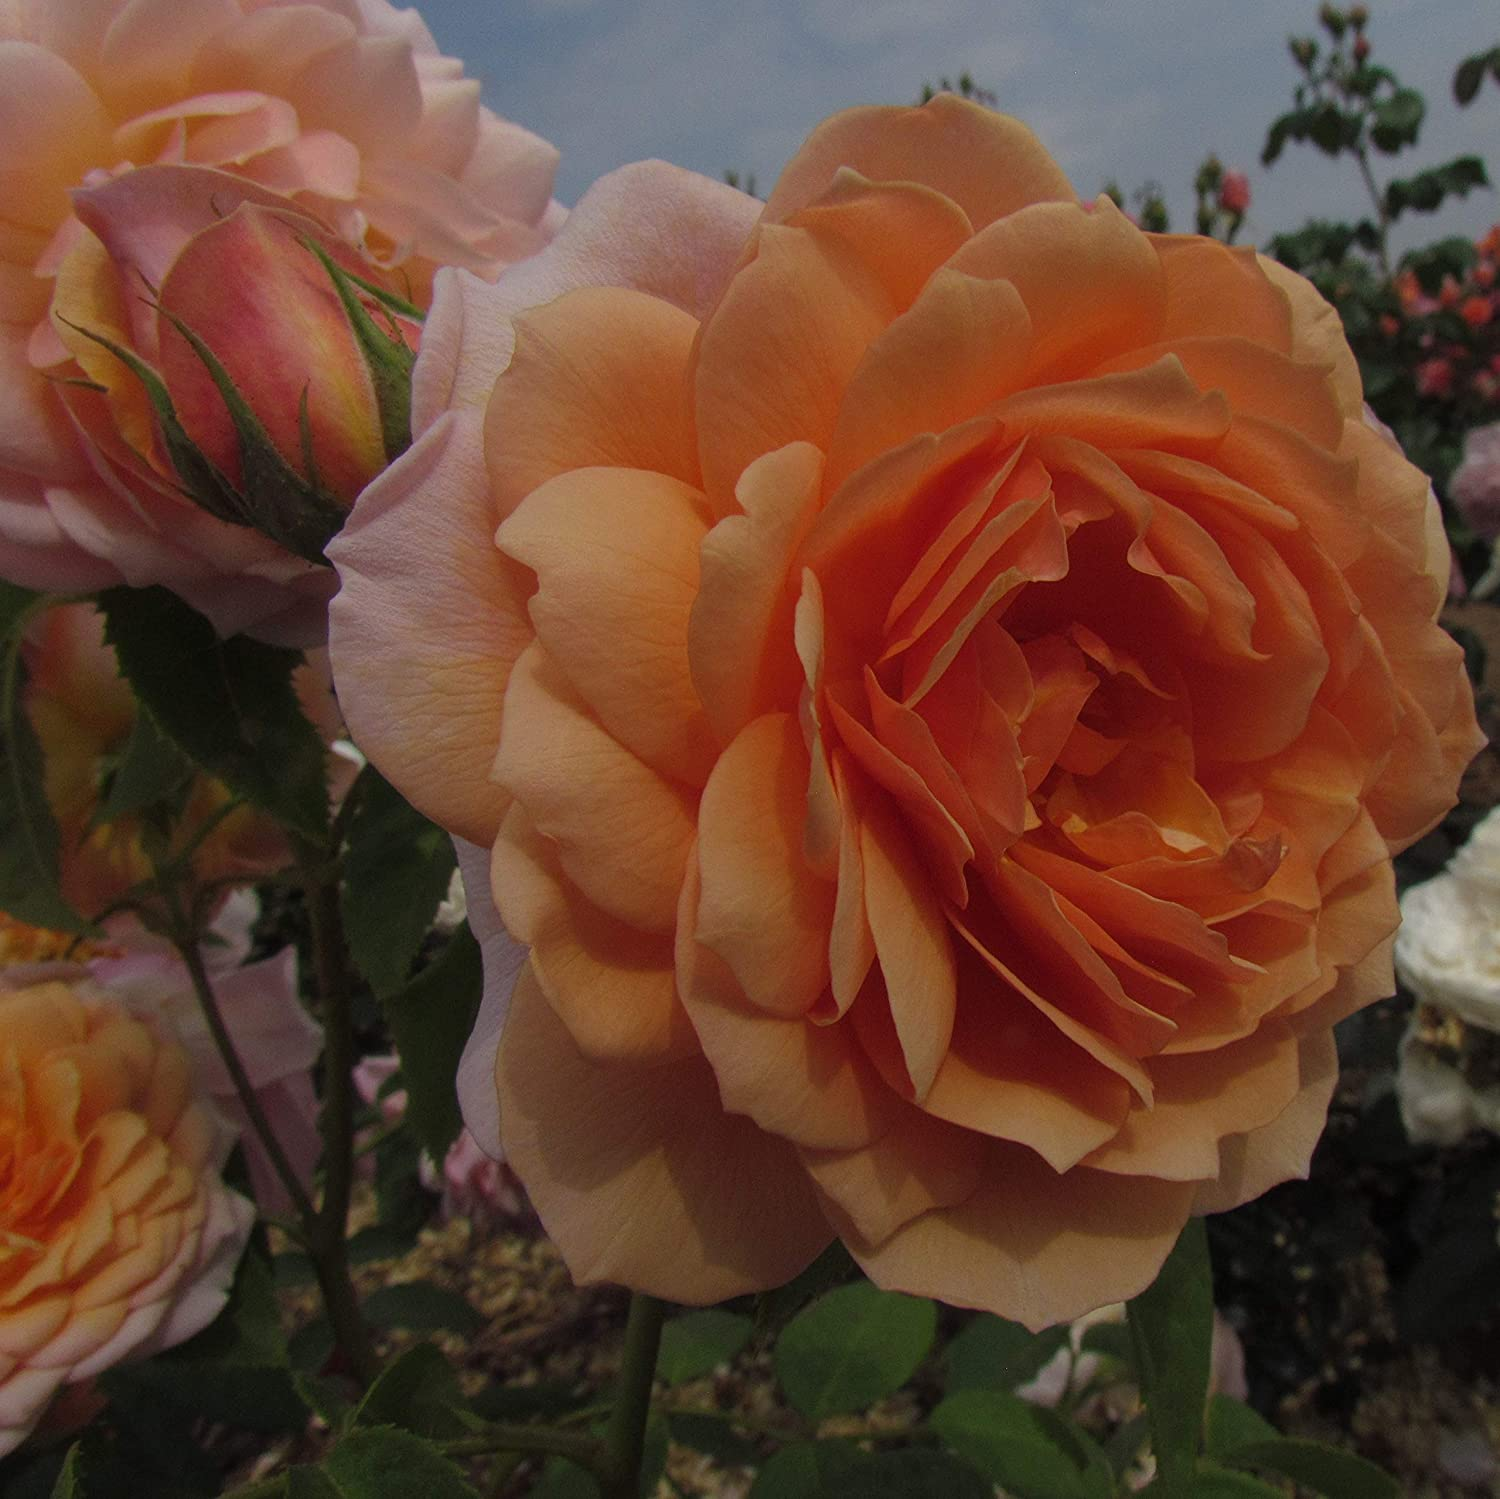 Grace 5 5lt Potted David Austin Roses English Shrub Garden Rose Fragrant Pastel Orange Ginger Blooms Amazon Co Uk Garden Outdoors